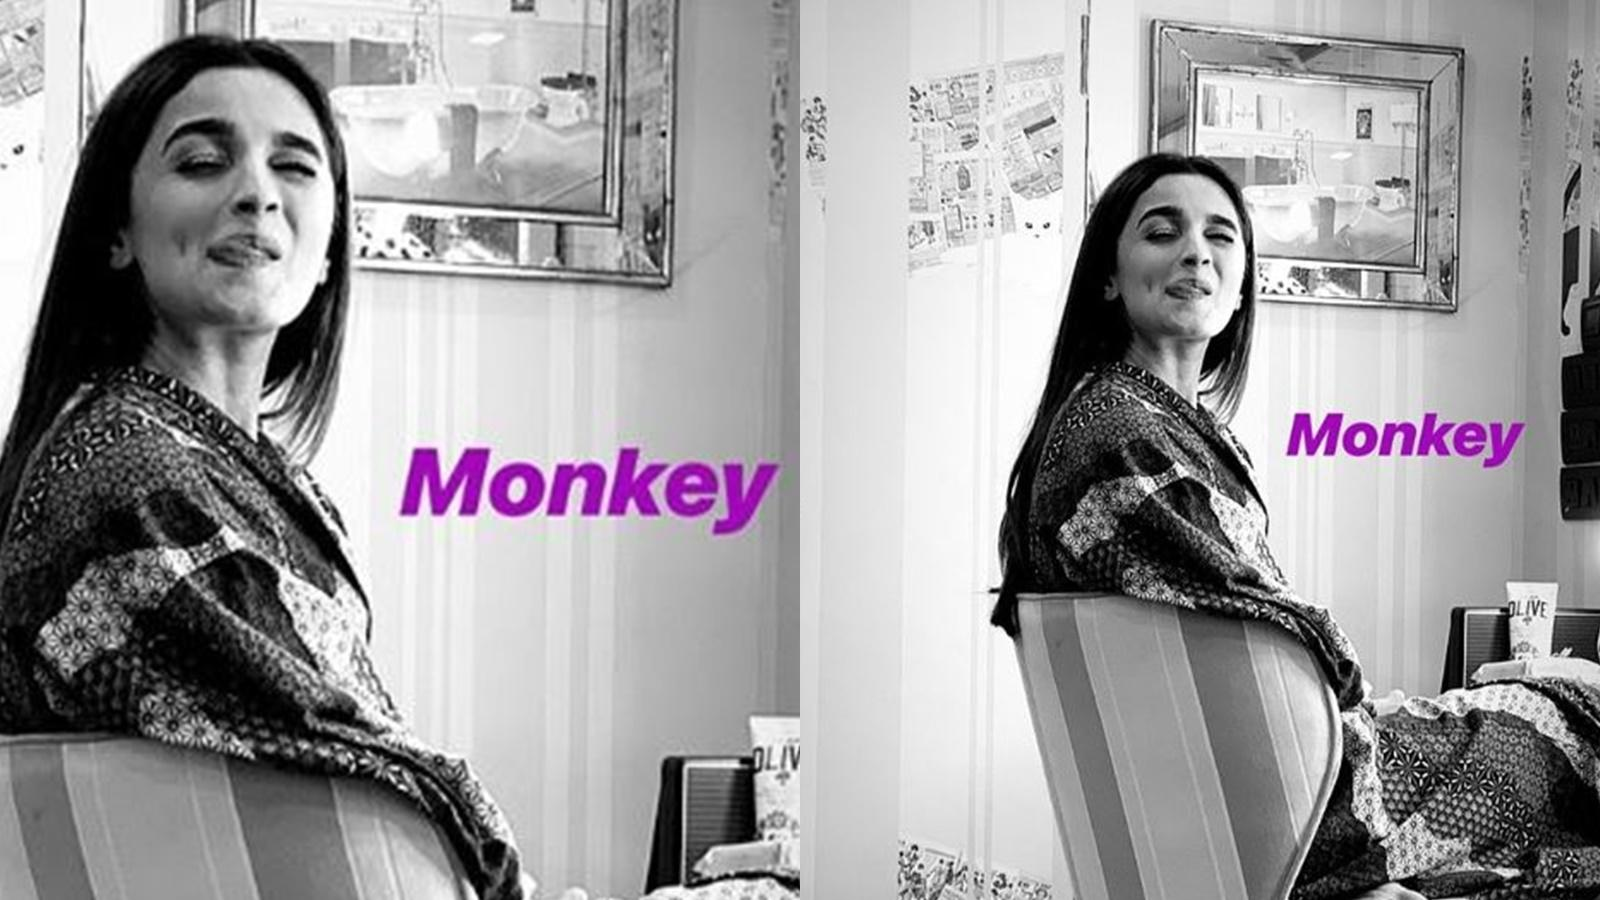 Shaheen Bhatt posts an adorable picture of her 'monkey' Alia Bhatt